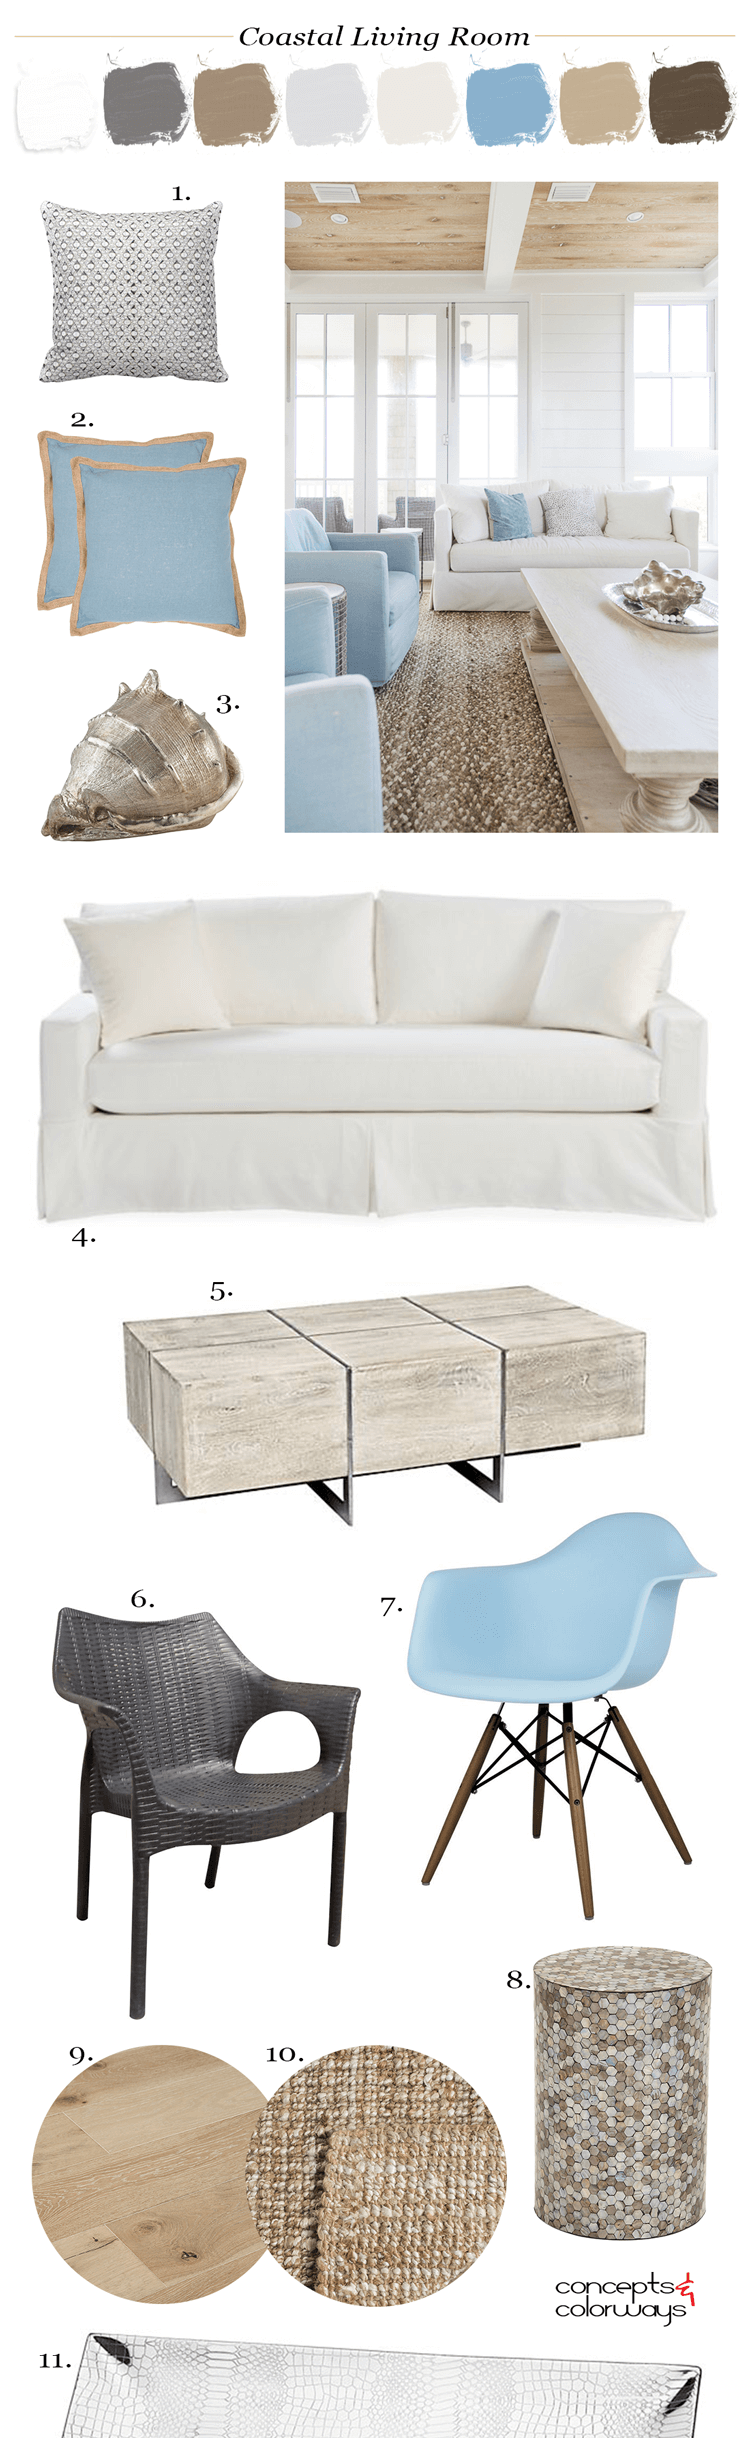 A Tan And Blue Color Palette For Coastal Living Rooms